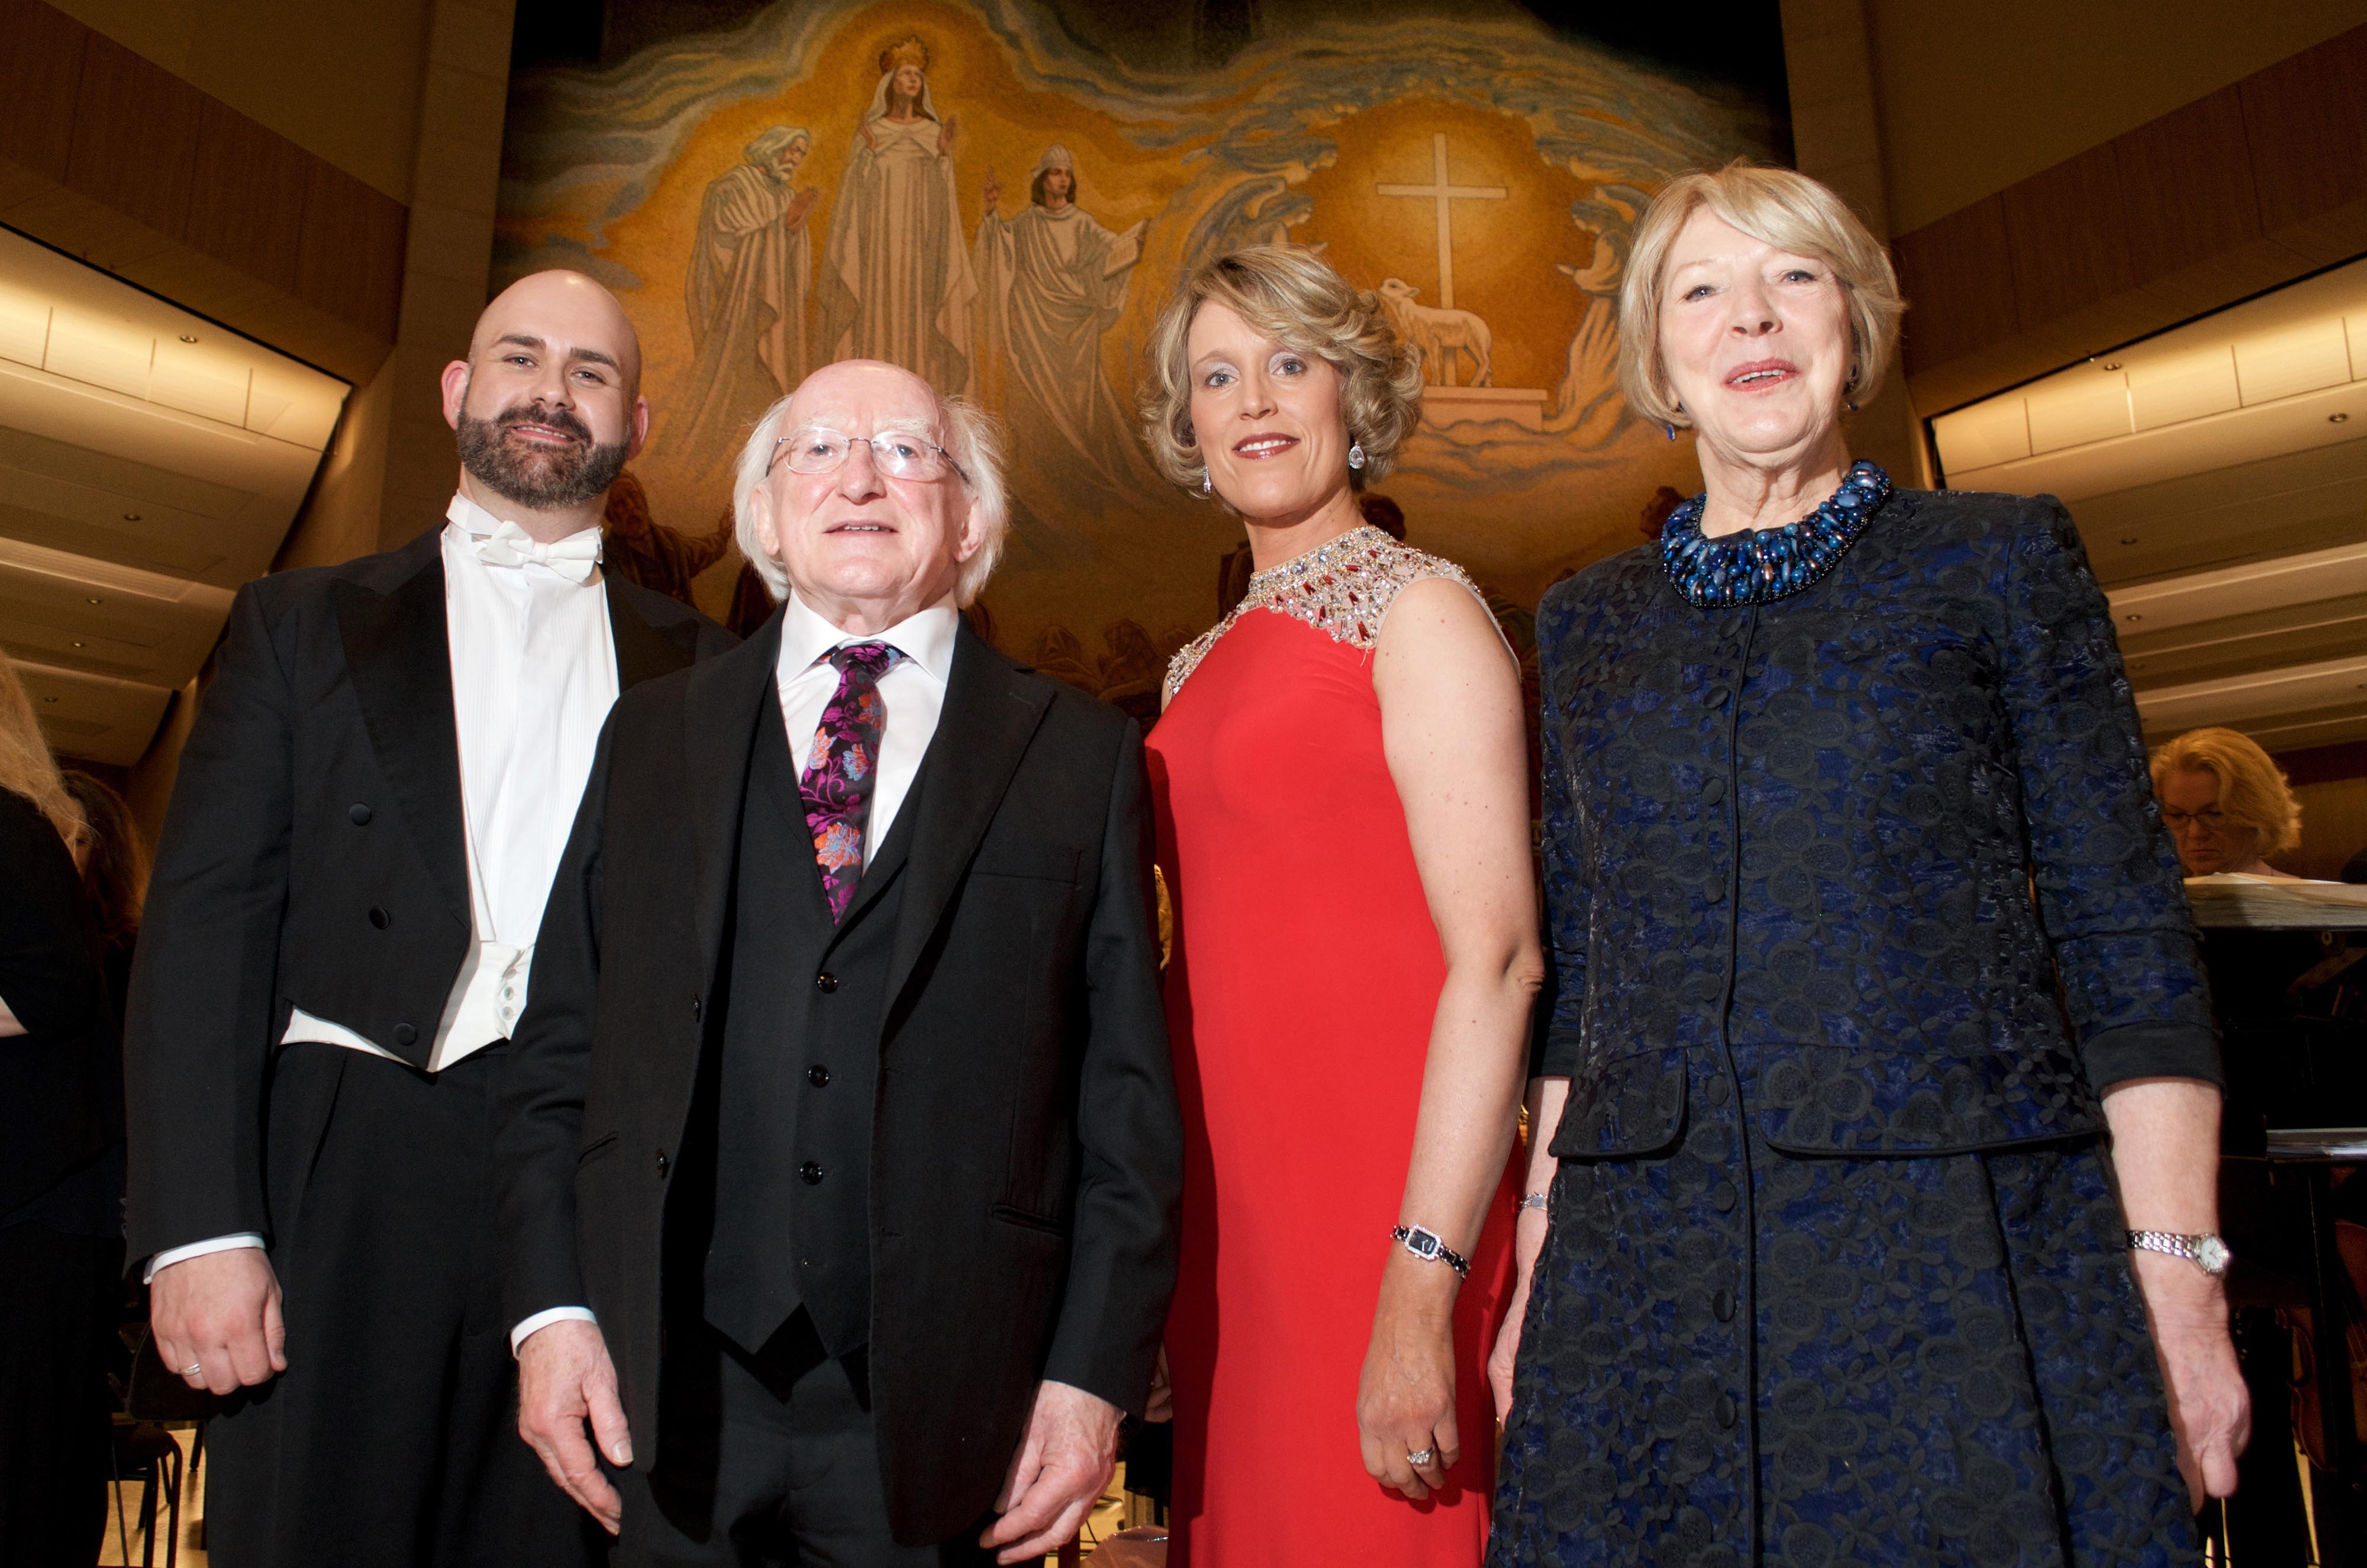 The President of Ireland, Michael D. Higgins and Sabina Higgins at the Concert for Peace, Knock Basilica, Saturday May 14th, pictured with Mezzo Soprano Anne Marie Gibbons and Tenor Owen Gilhooly. The sell-out concert, hosted by the Mayo International Choral Festival, also featured the RTÉ Concert Orchestra and a 120 strong peace choir, under the baton of conductor David Brophy. Photo: Alison Laredo